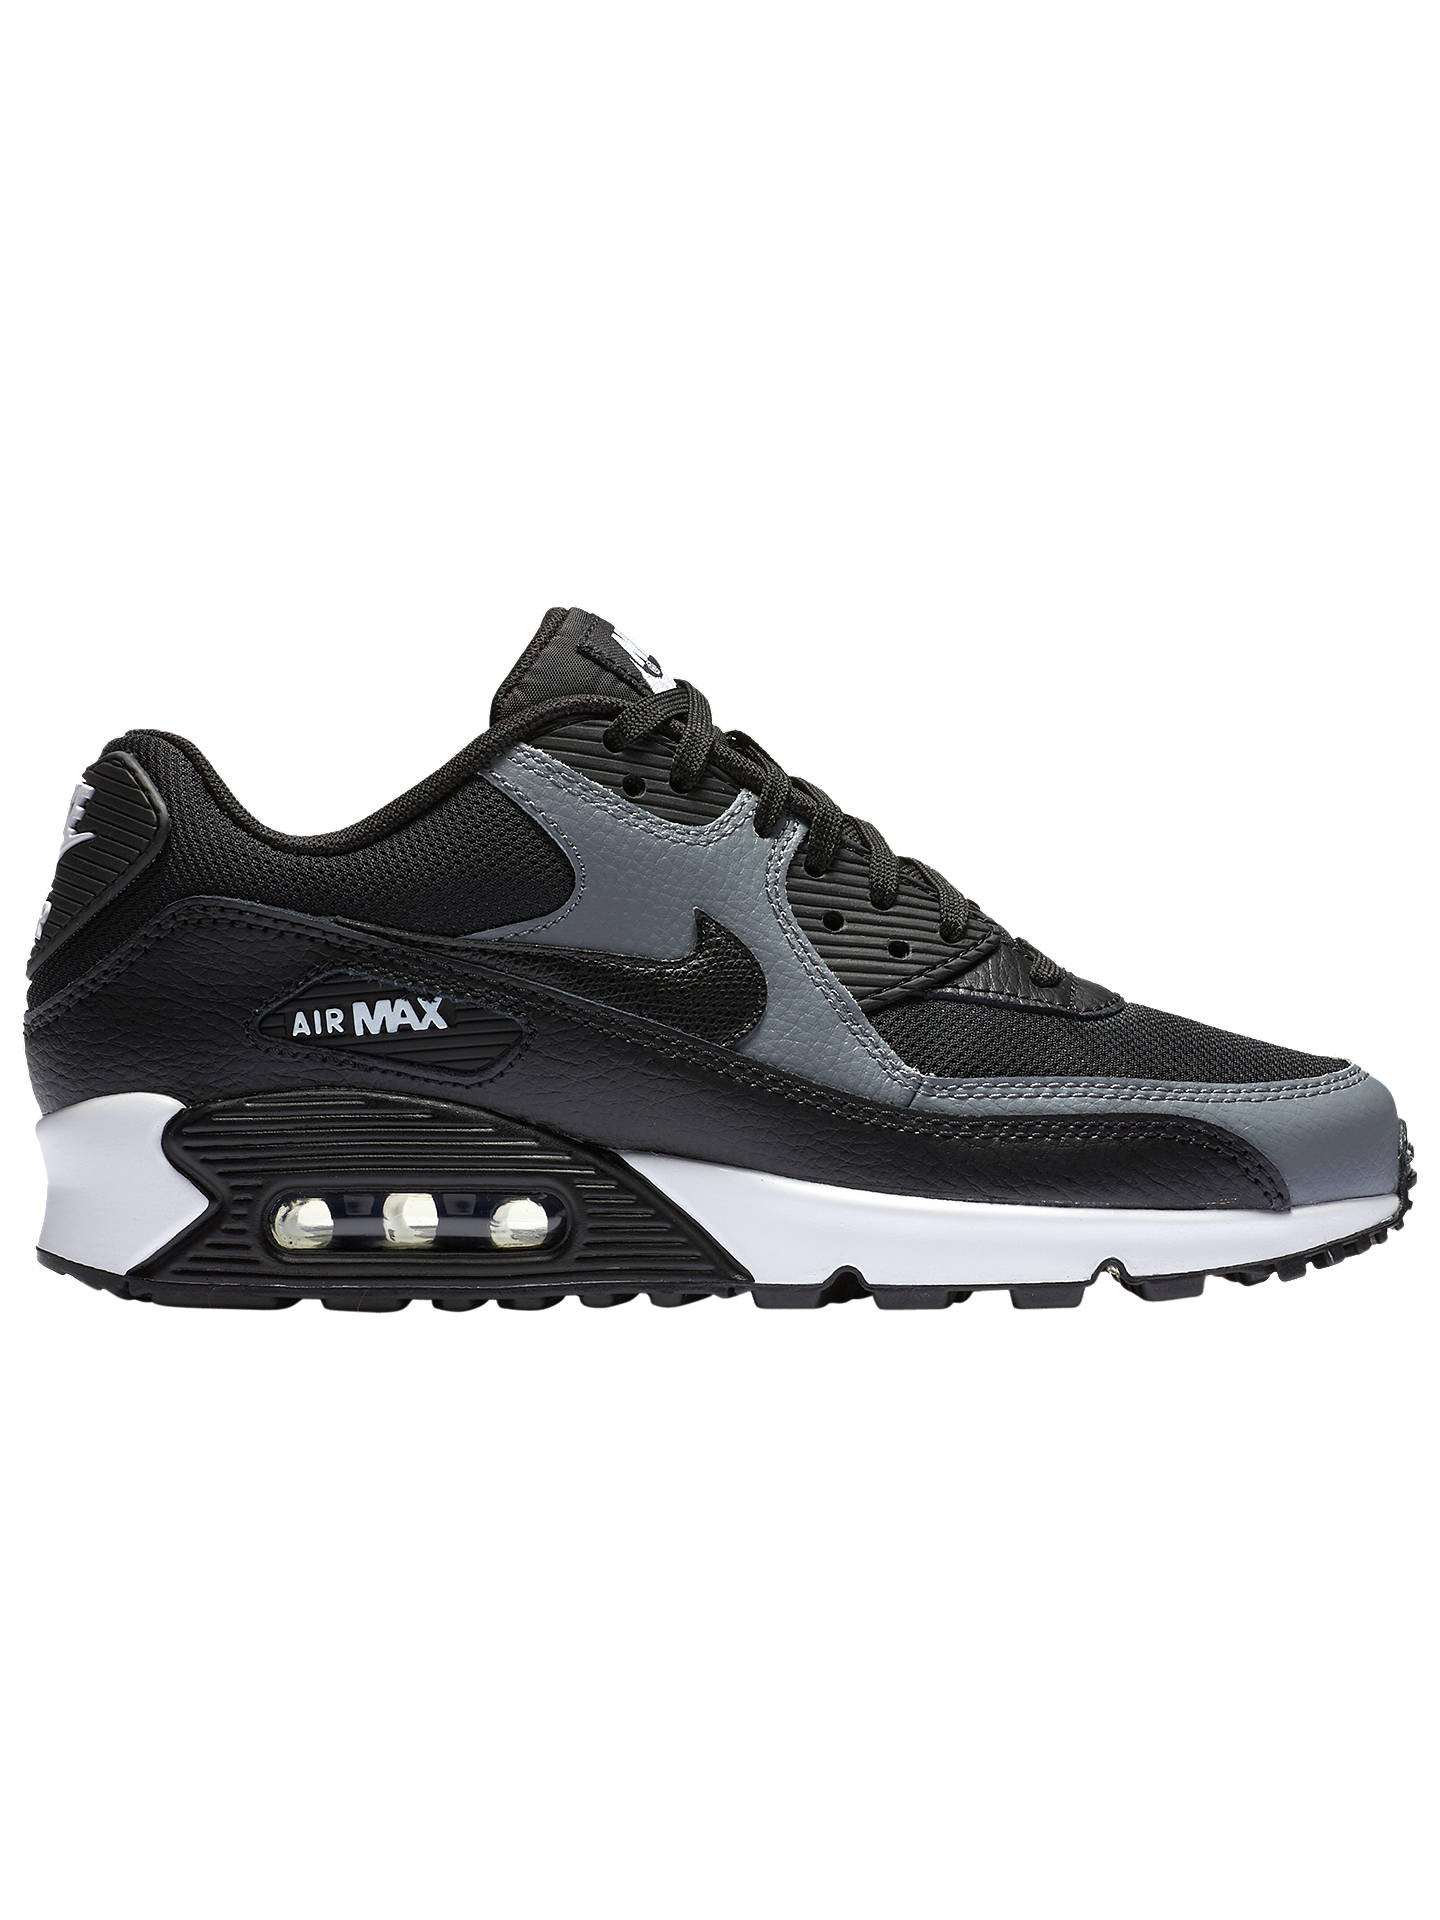 low priced 0f08d 877bb Nike Air Max 90 Women's Trainers, Black/White at John Lewis ...